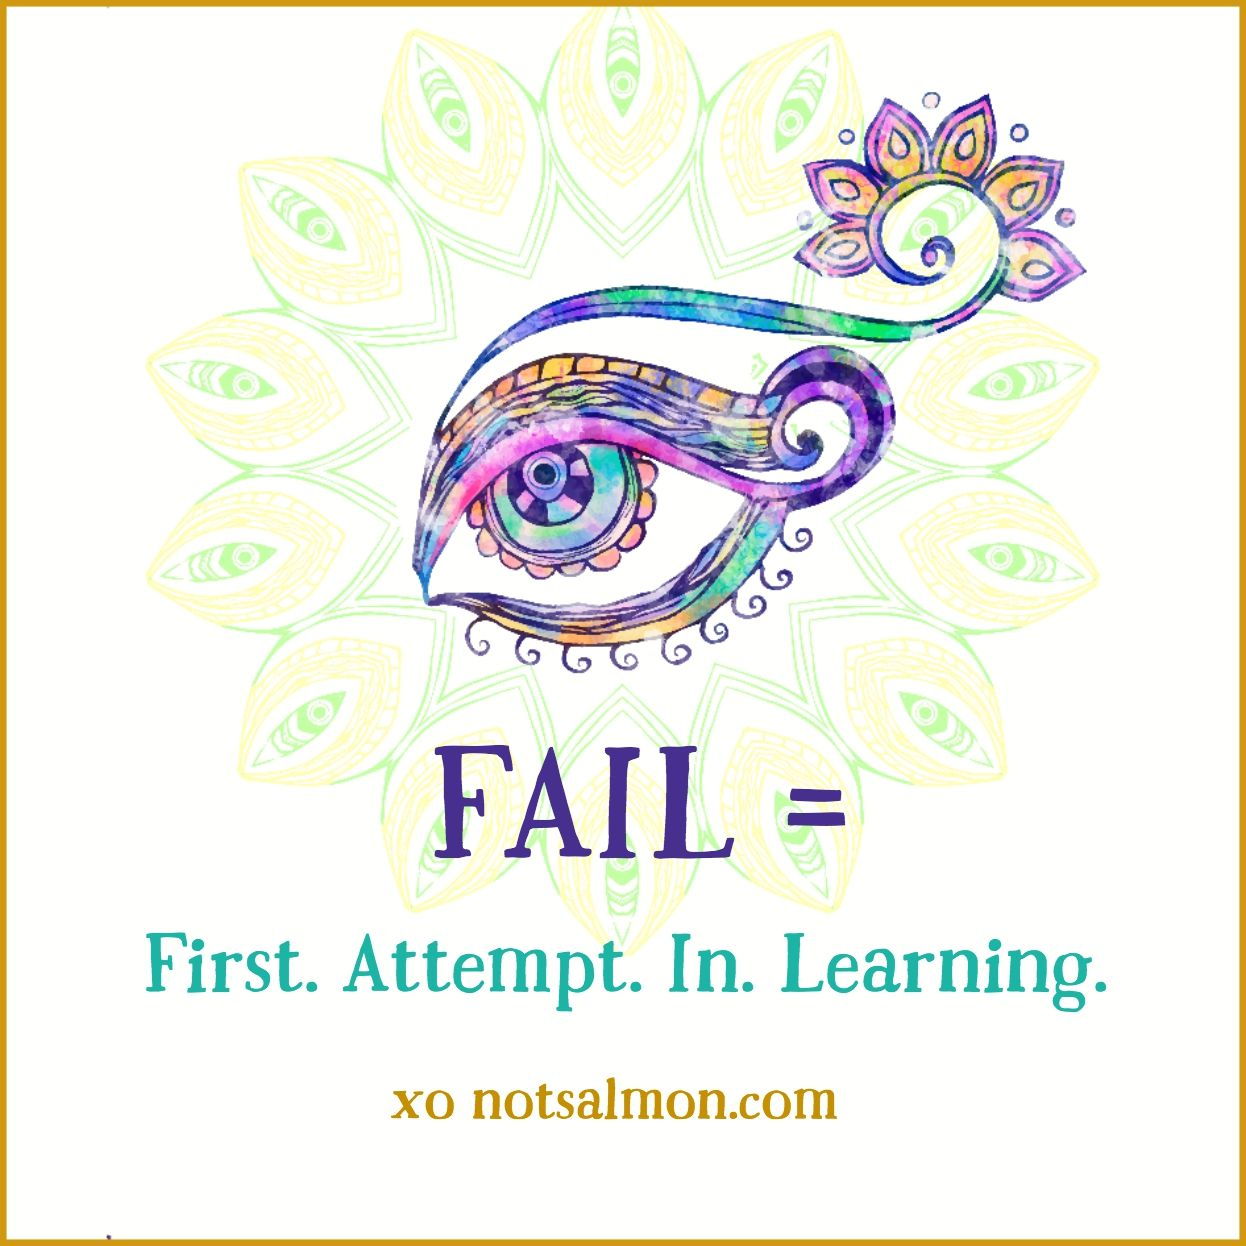 fail first attempt in learning notsalmon click eye for notsalmon click eye for more and essays